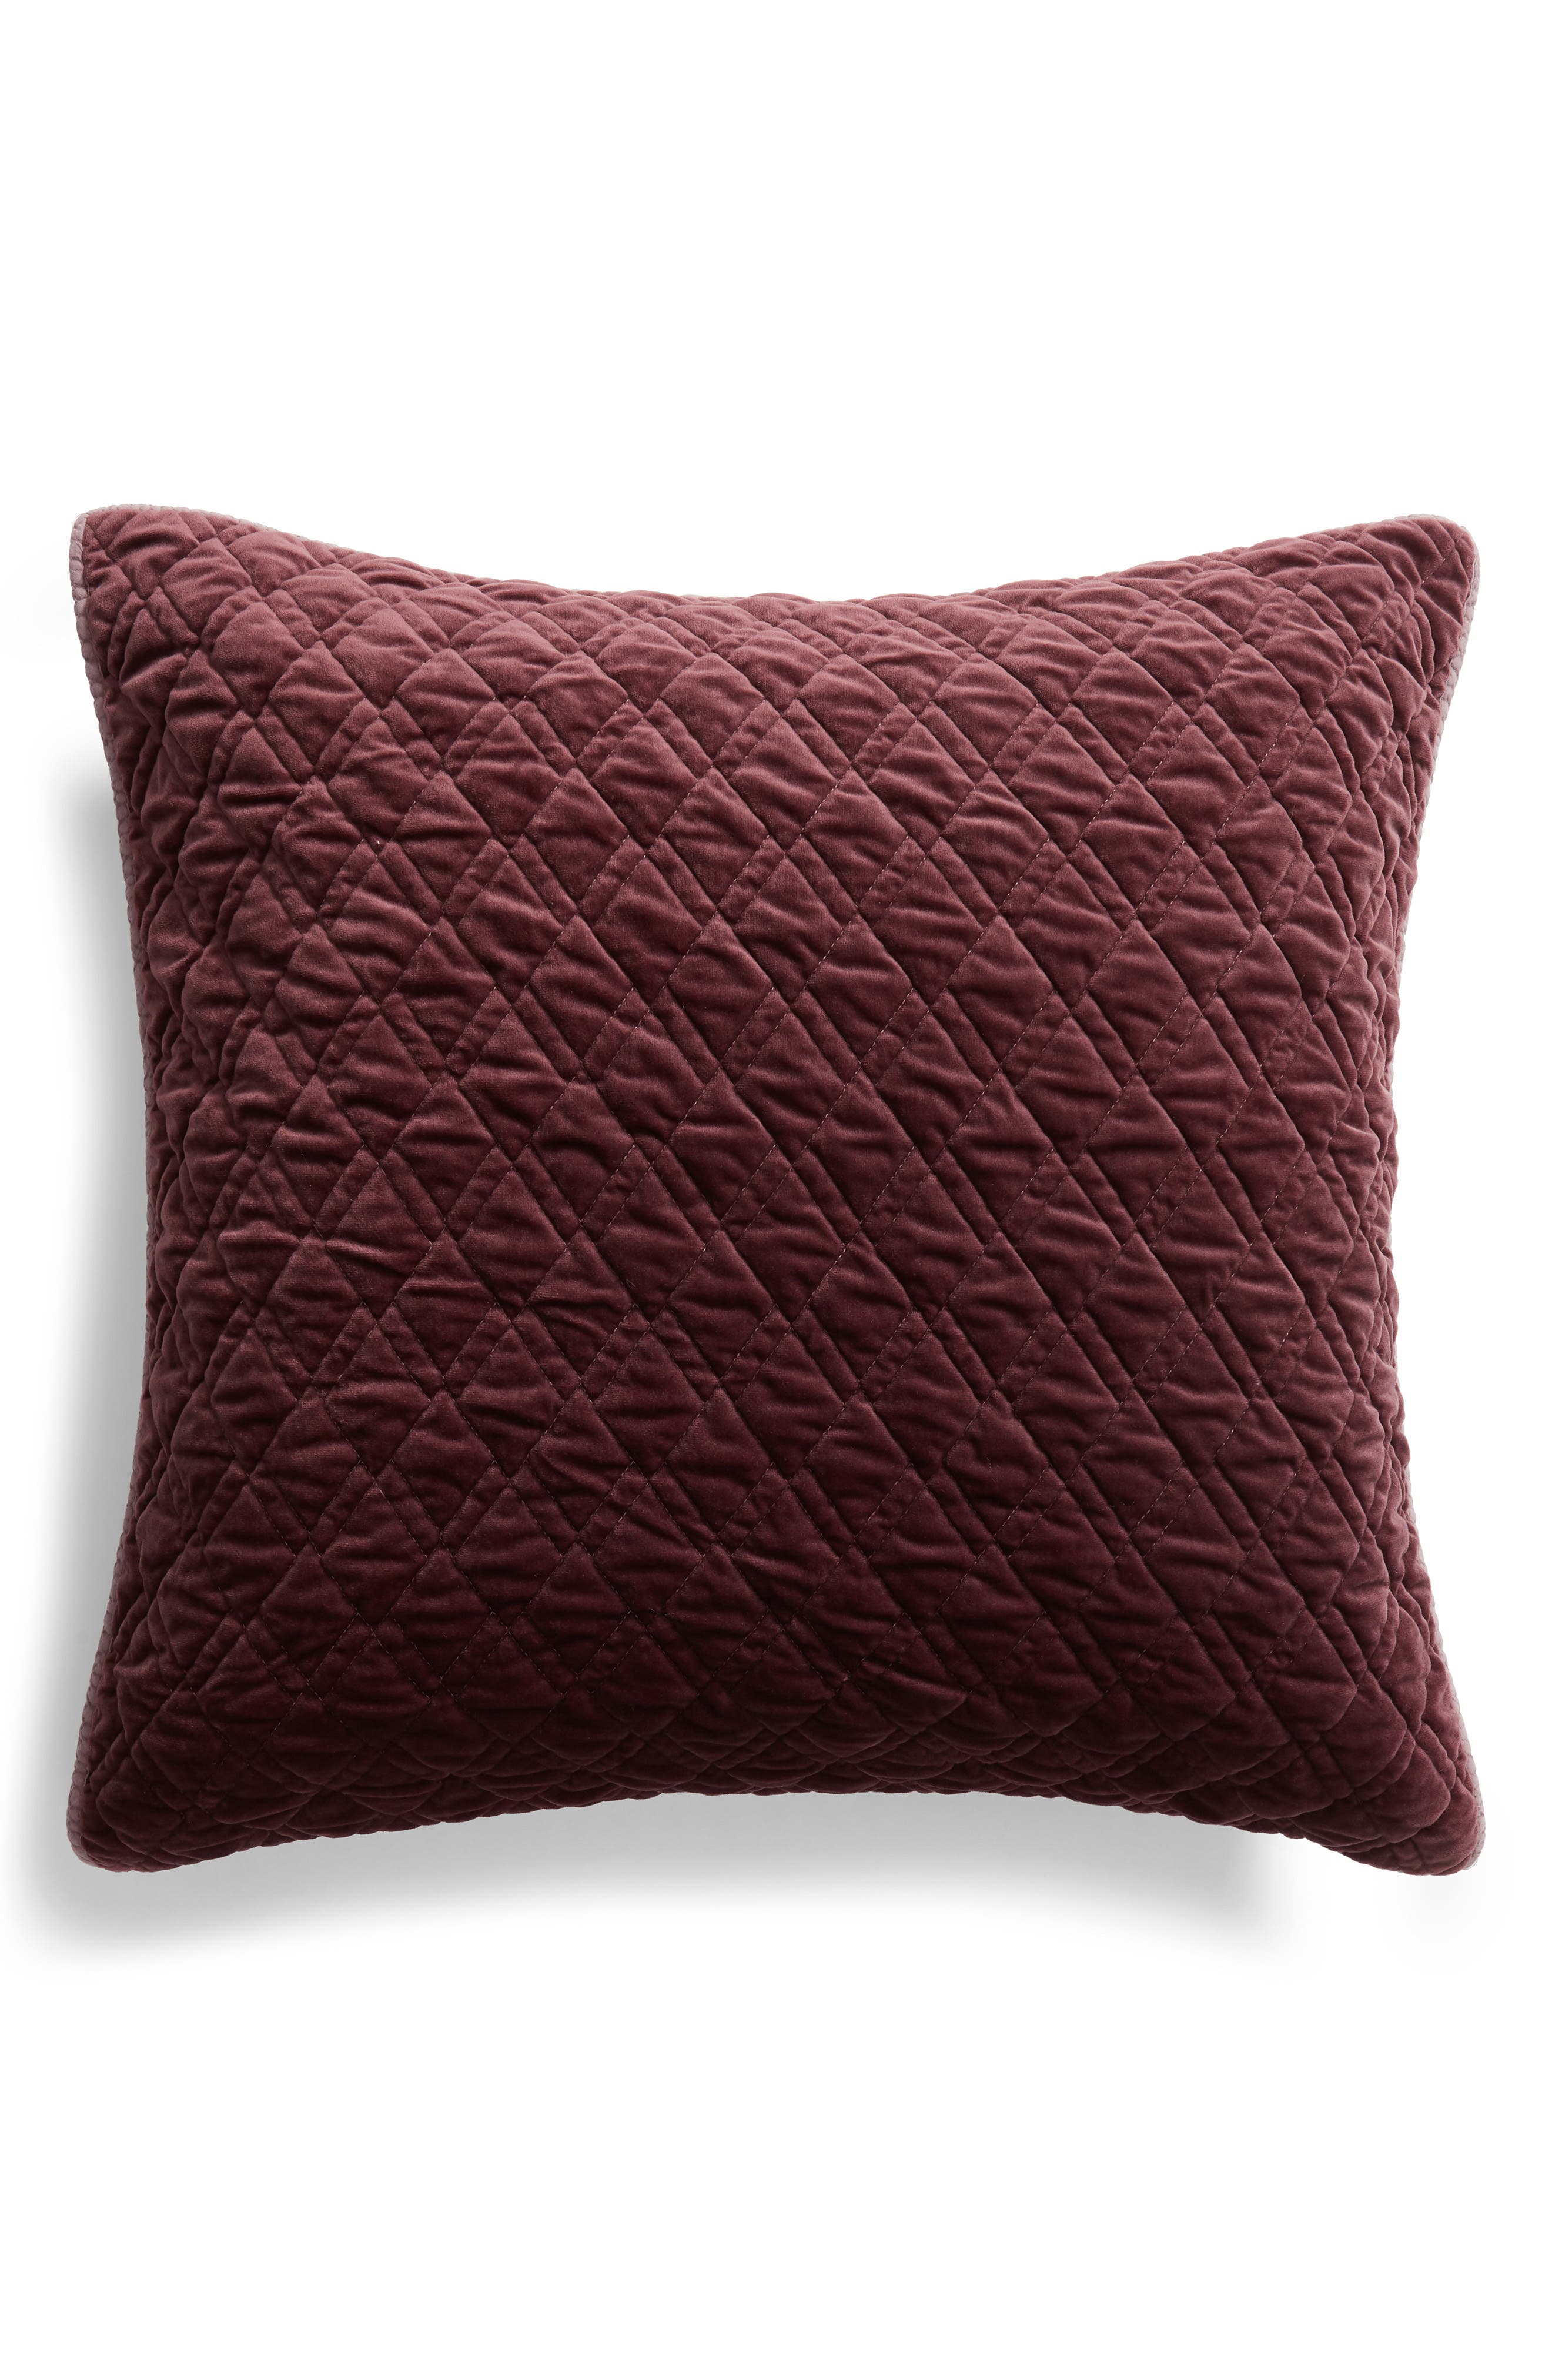 NORDSTROM AT HOME, Karlina Quilted Euro Sham, Main thumbnail 1, color, BURGUNDY STEM